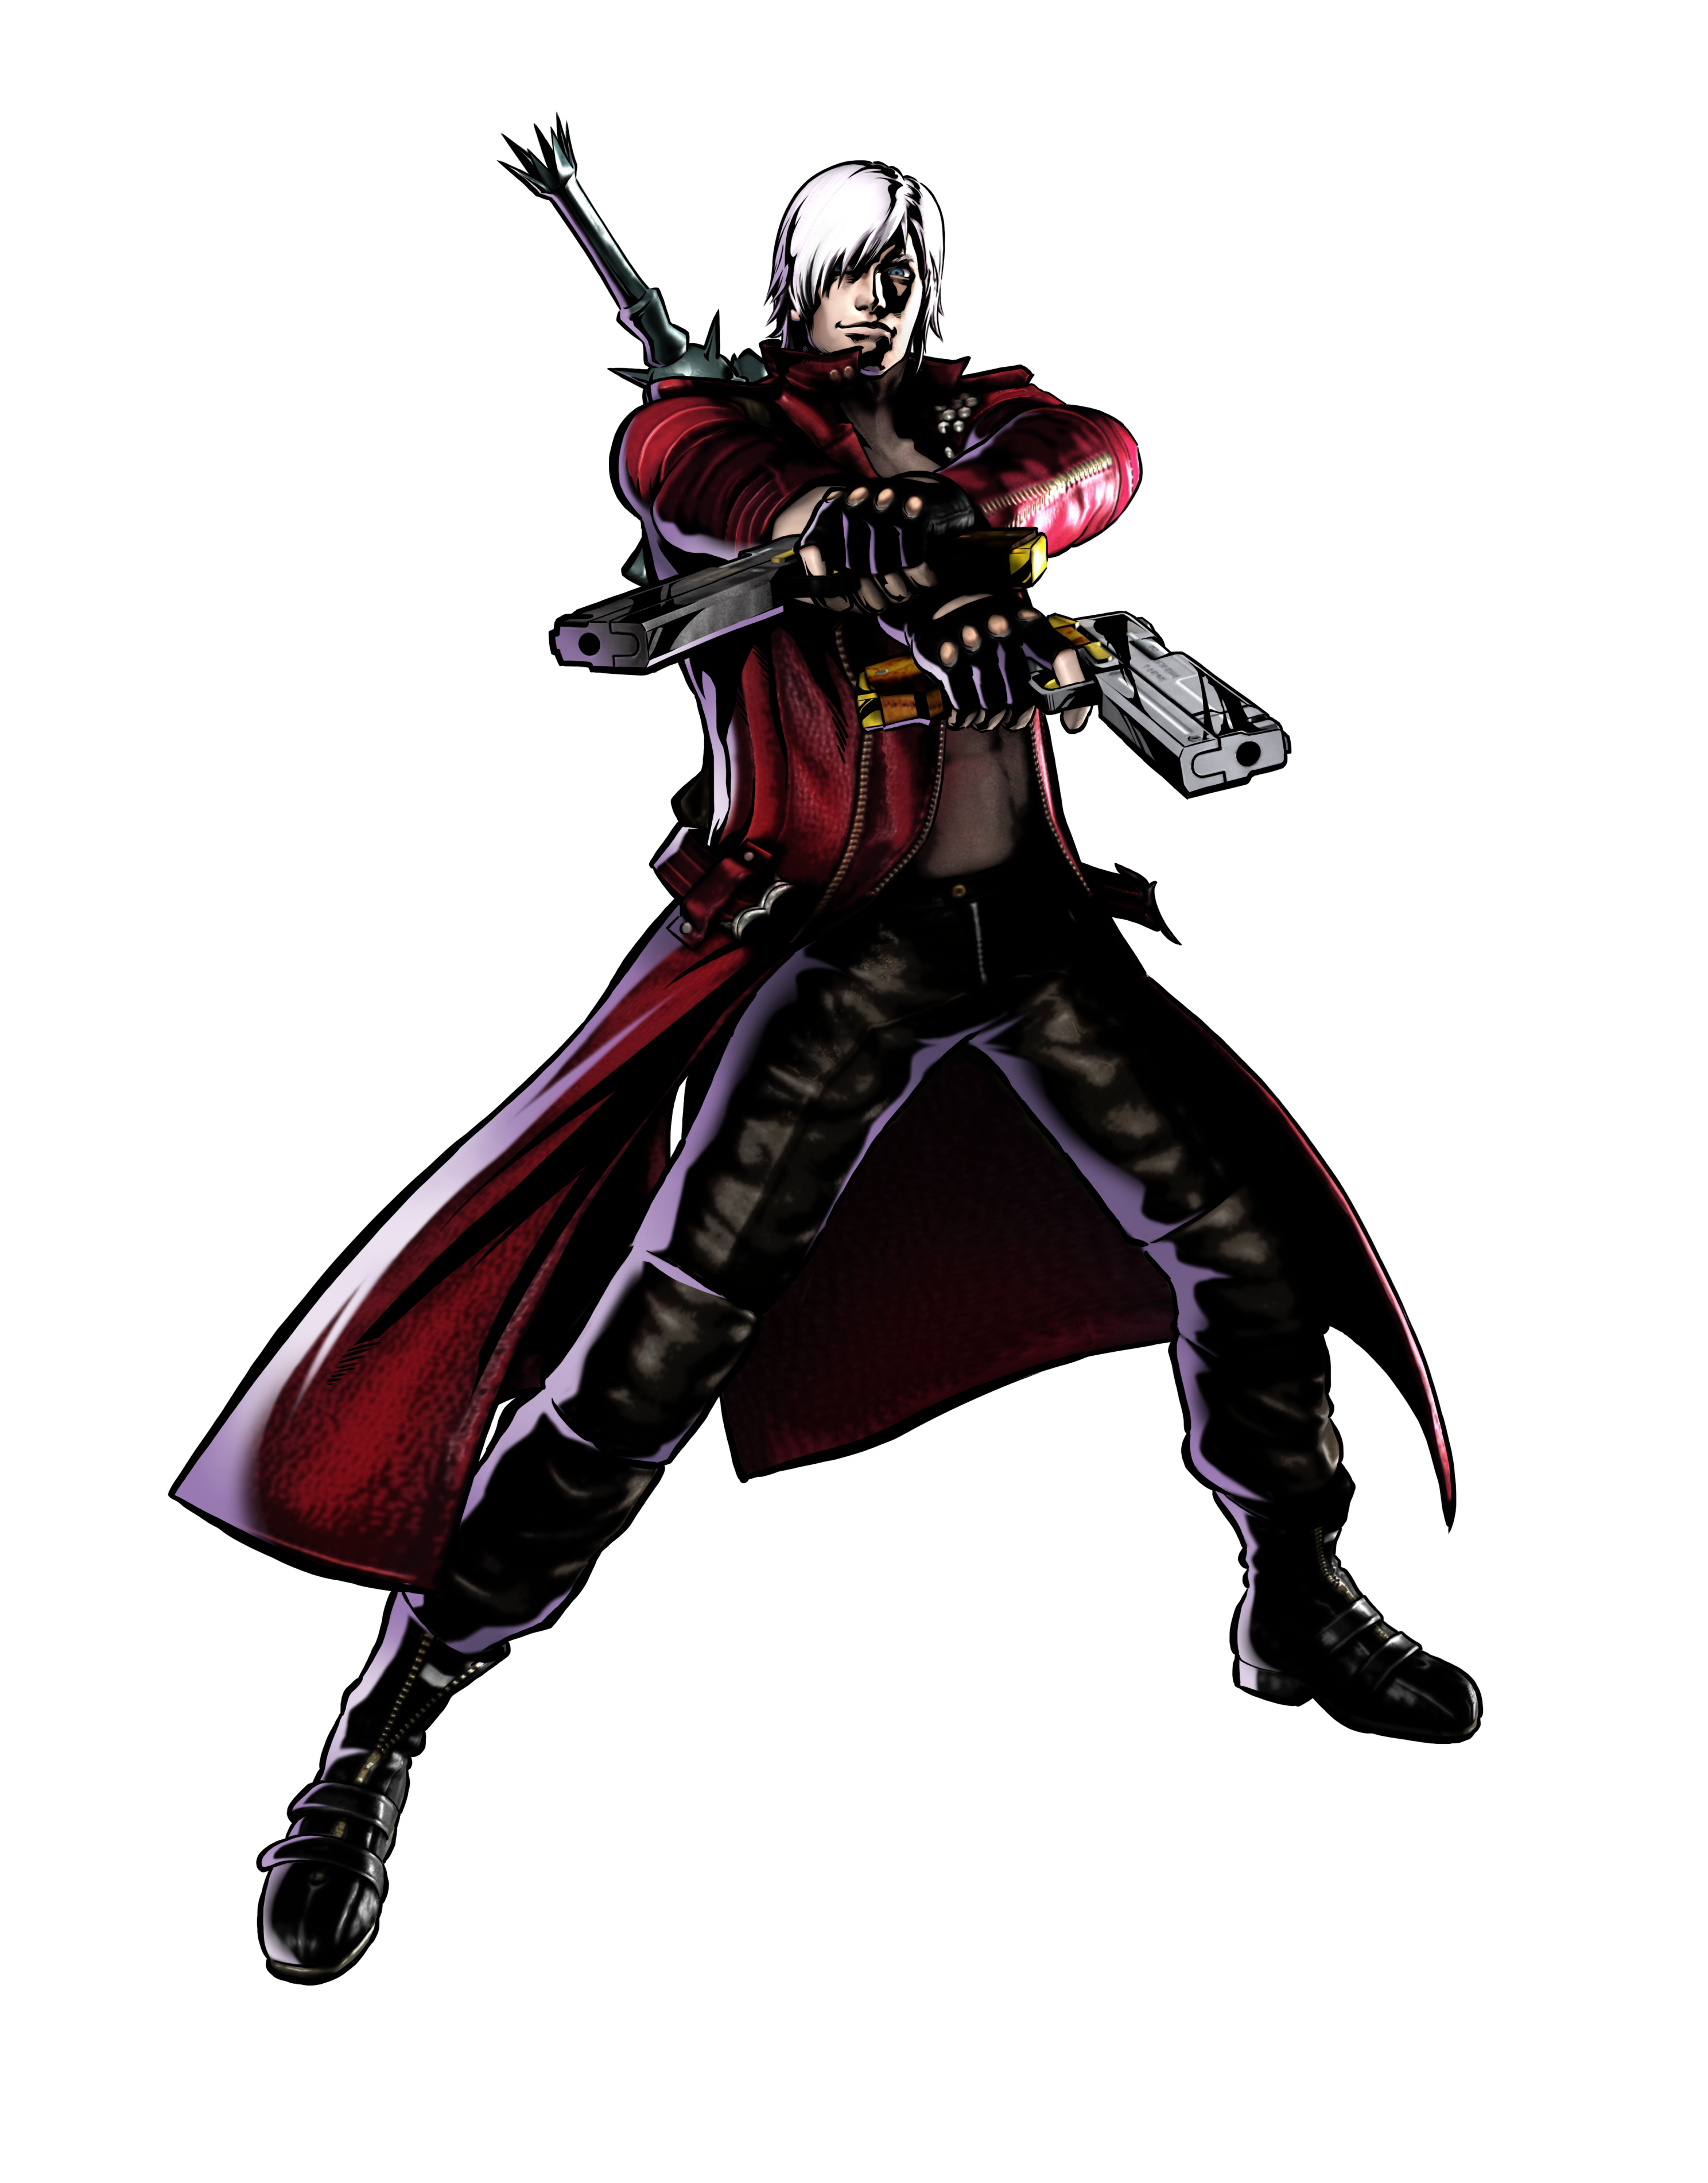 Devil May Cry ☩ Dante on Pinterest | Devil May Cry, Deviantart and ...